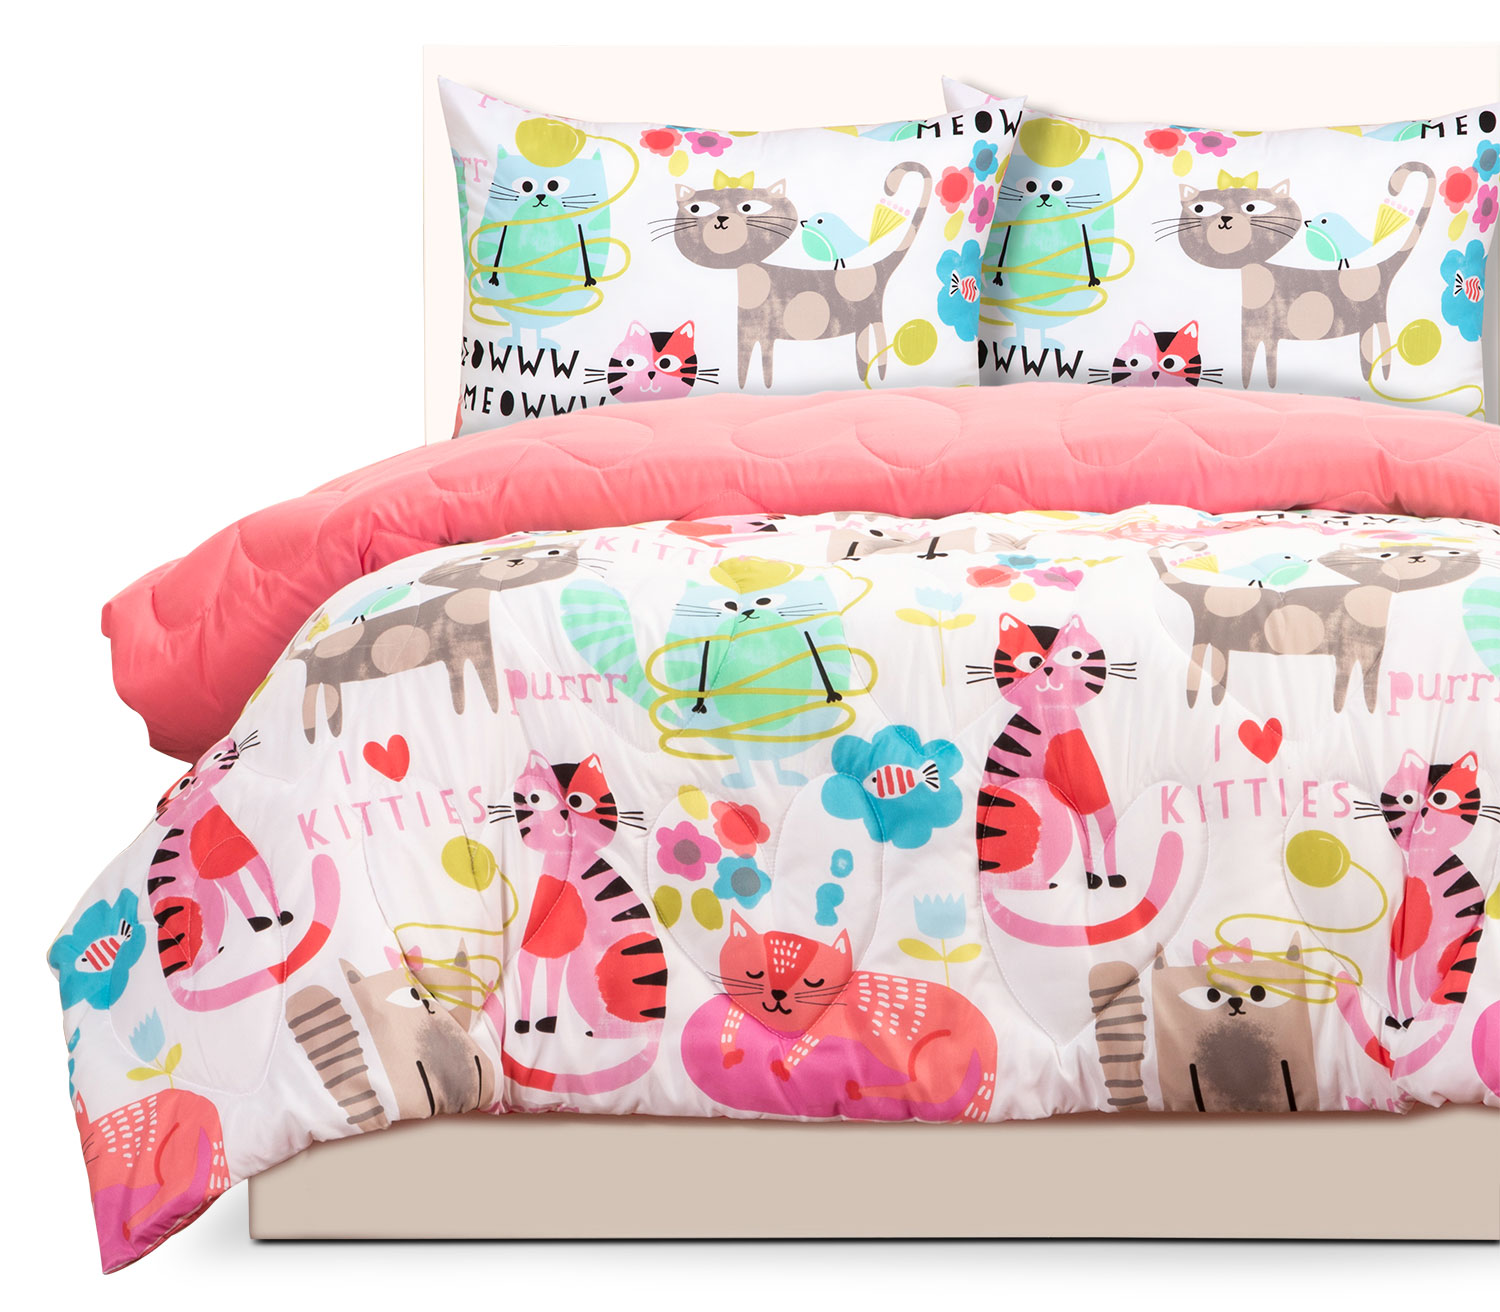 Mattresses and Bedding - Purrty Cat 3-Piece Full Comforter Set